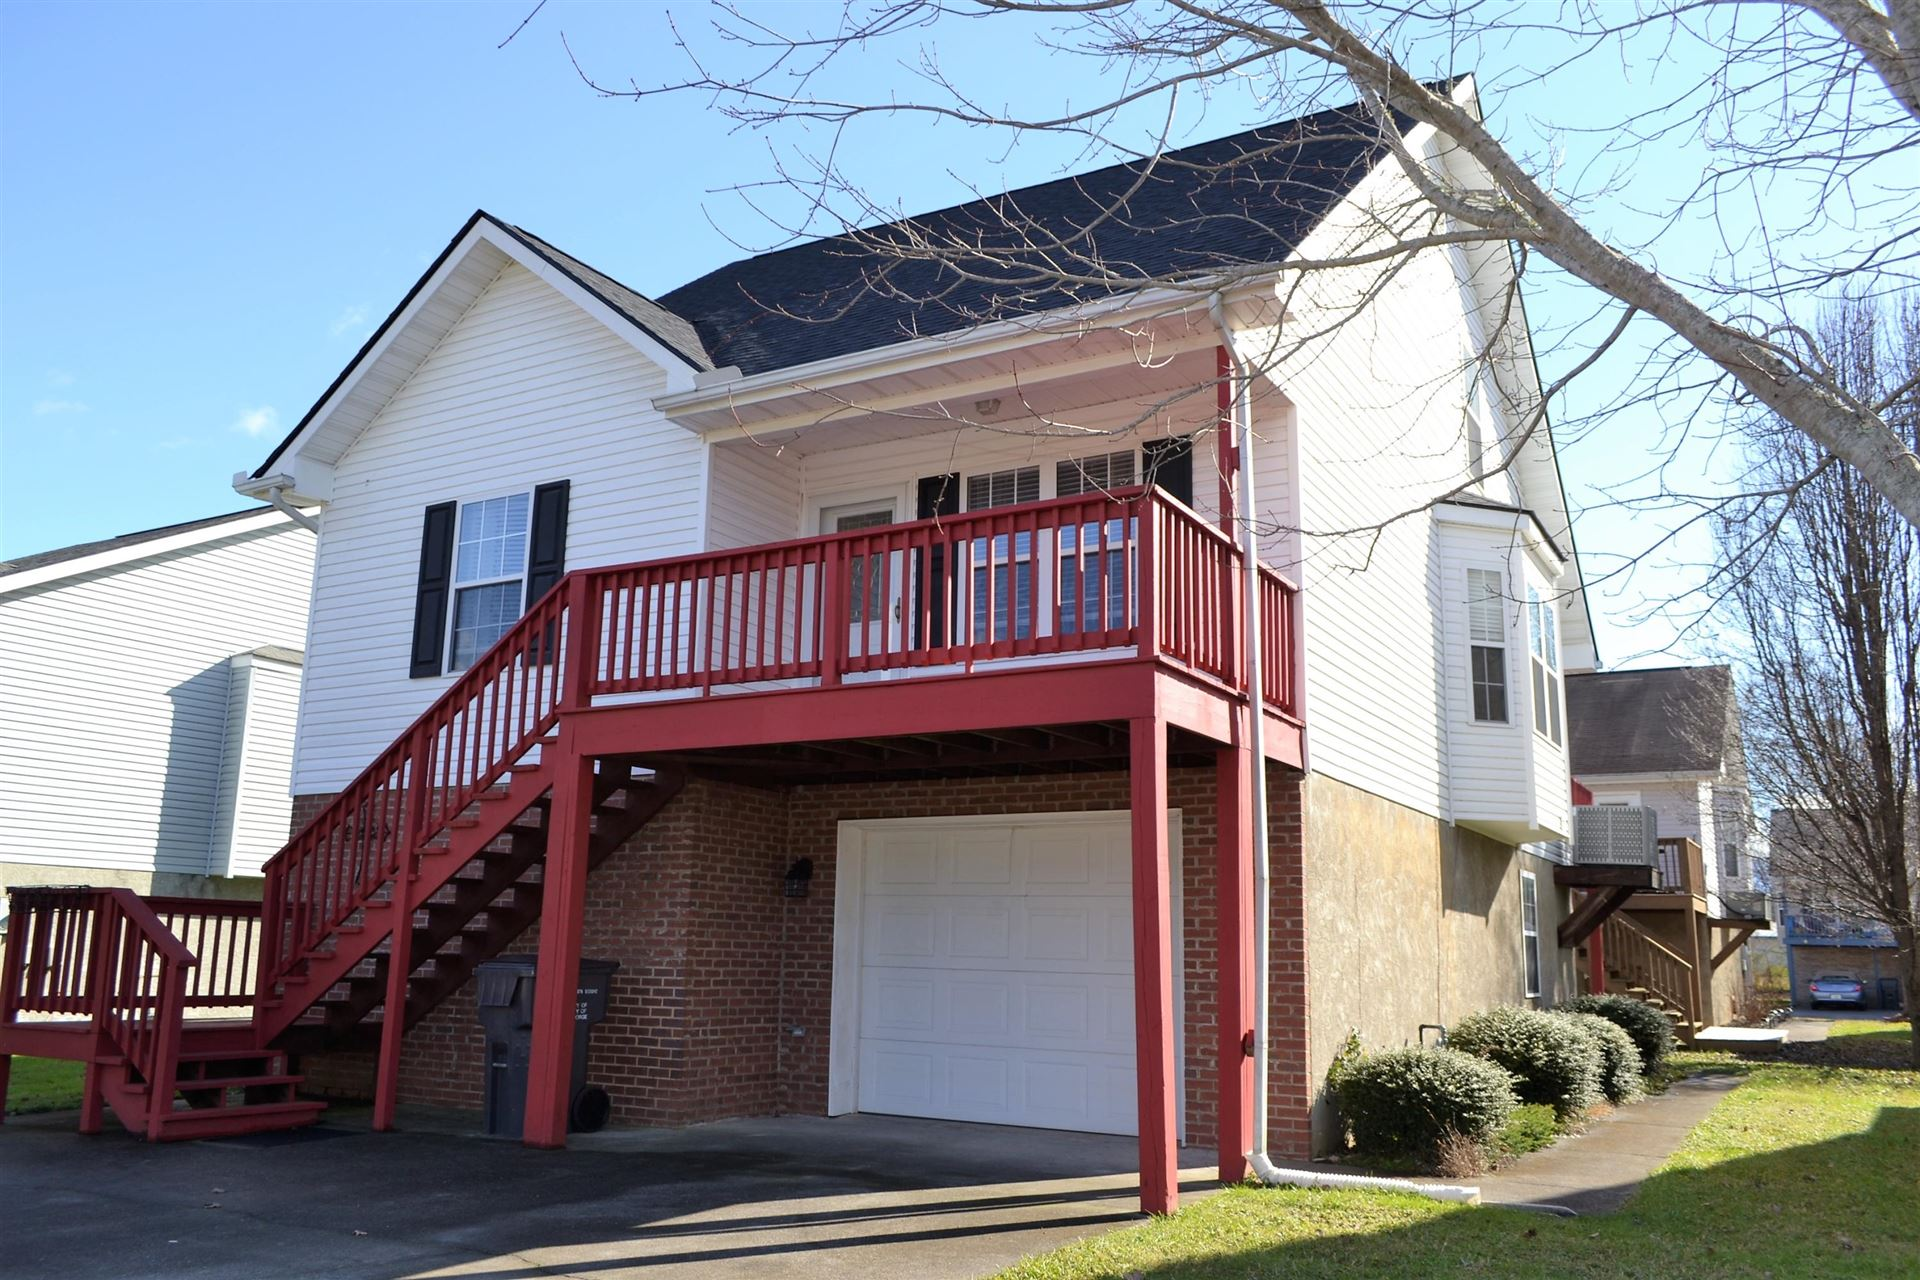 Photo of 749 Plantation Drive, Pigeon Forge, TN 37863 (MLS # 1140267)